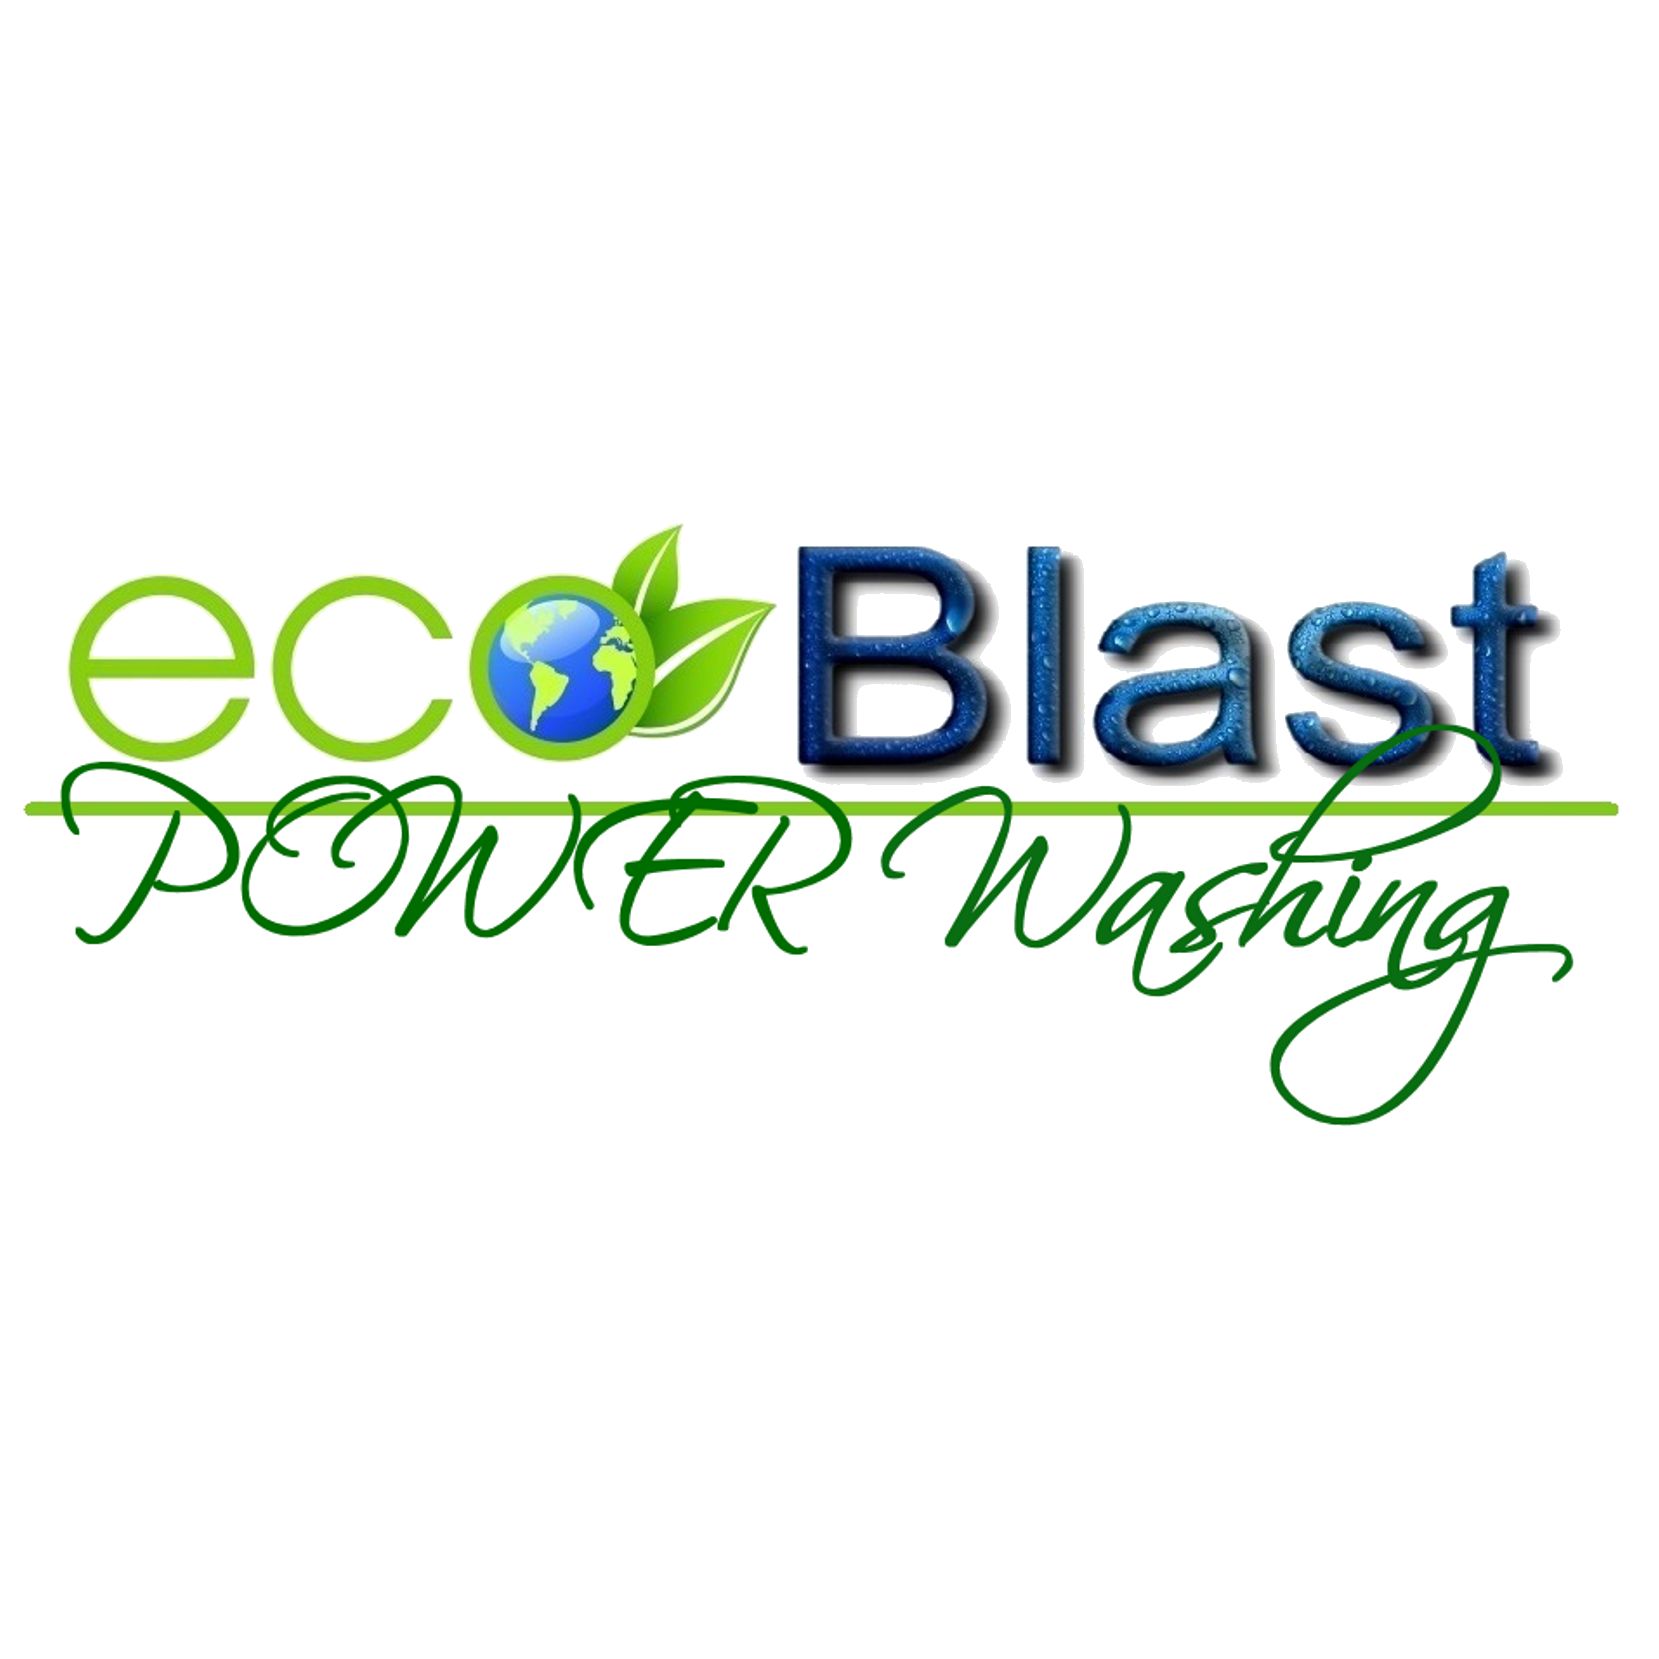 Ecoblast Powerwashing image 5